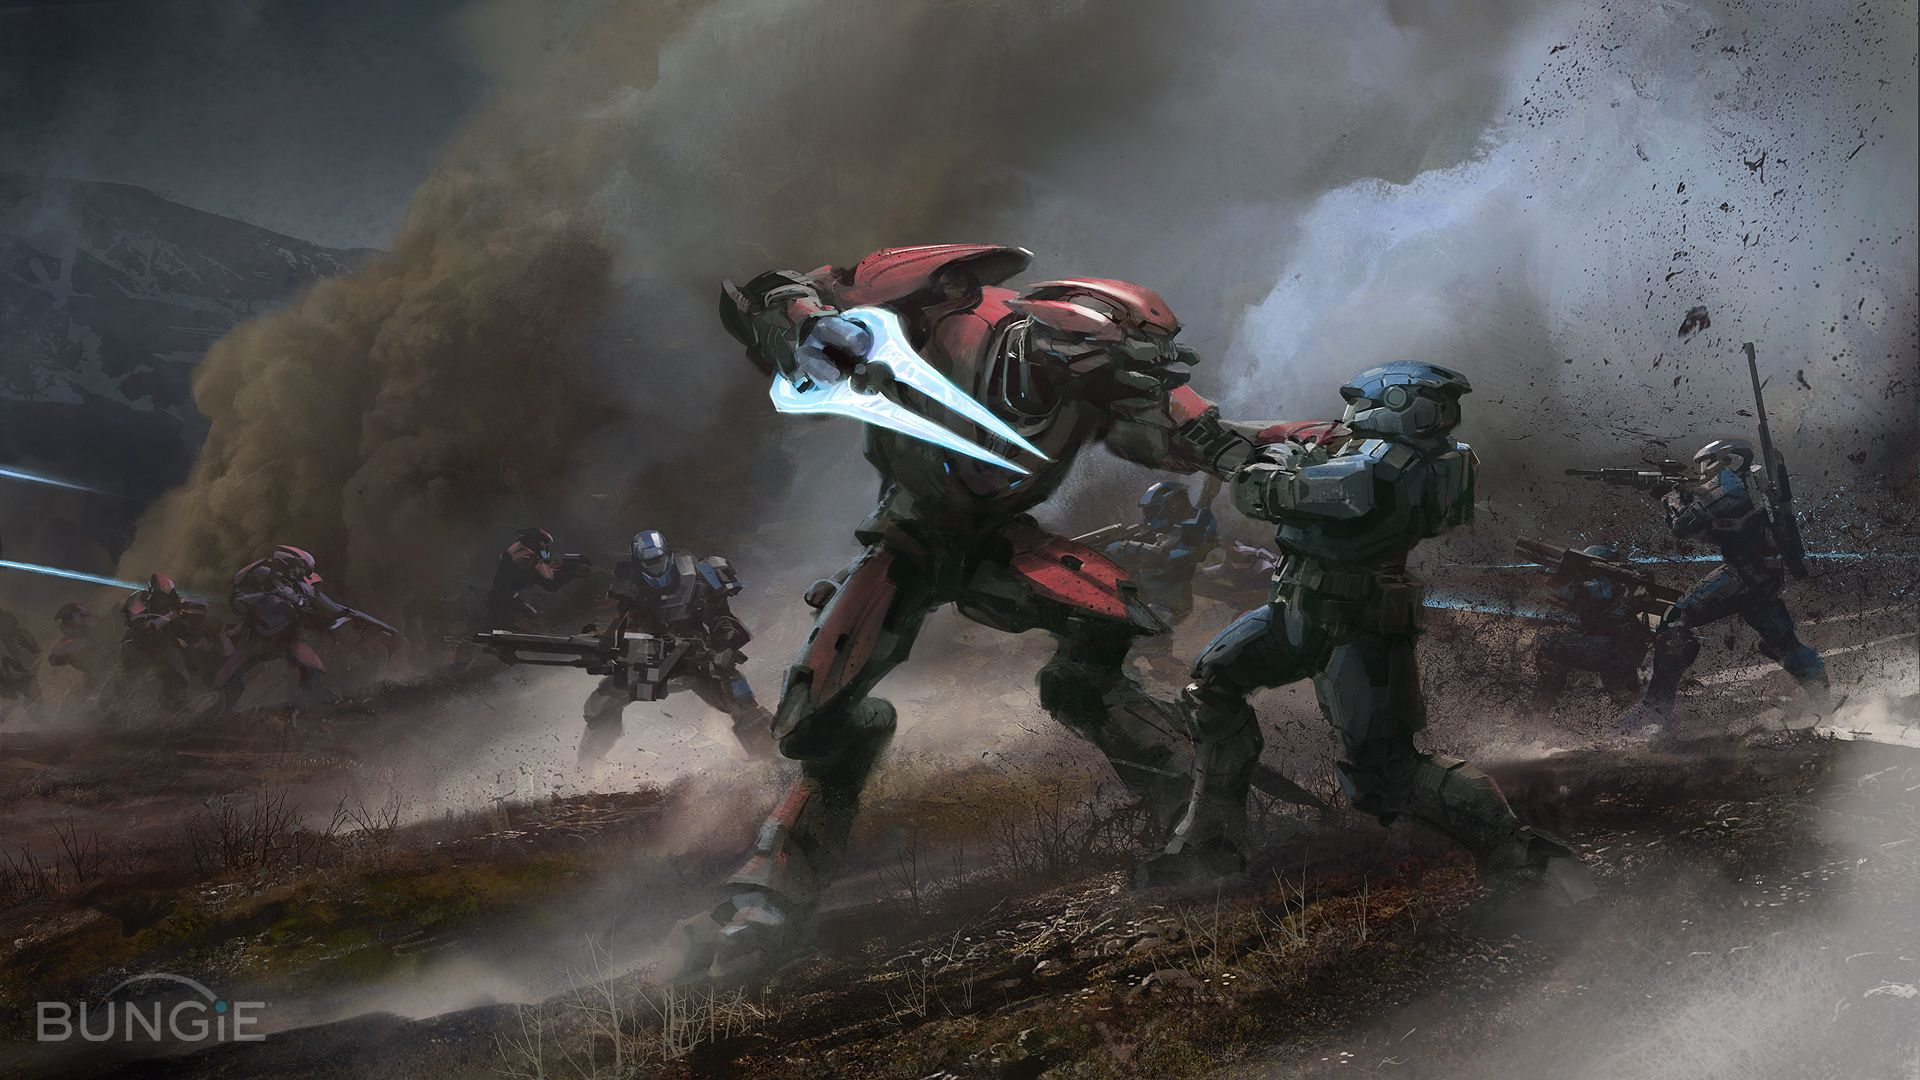 Bungie Concept art for Halo Reach